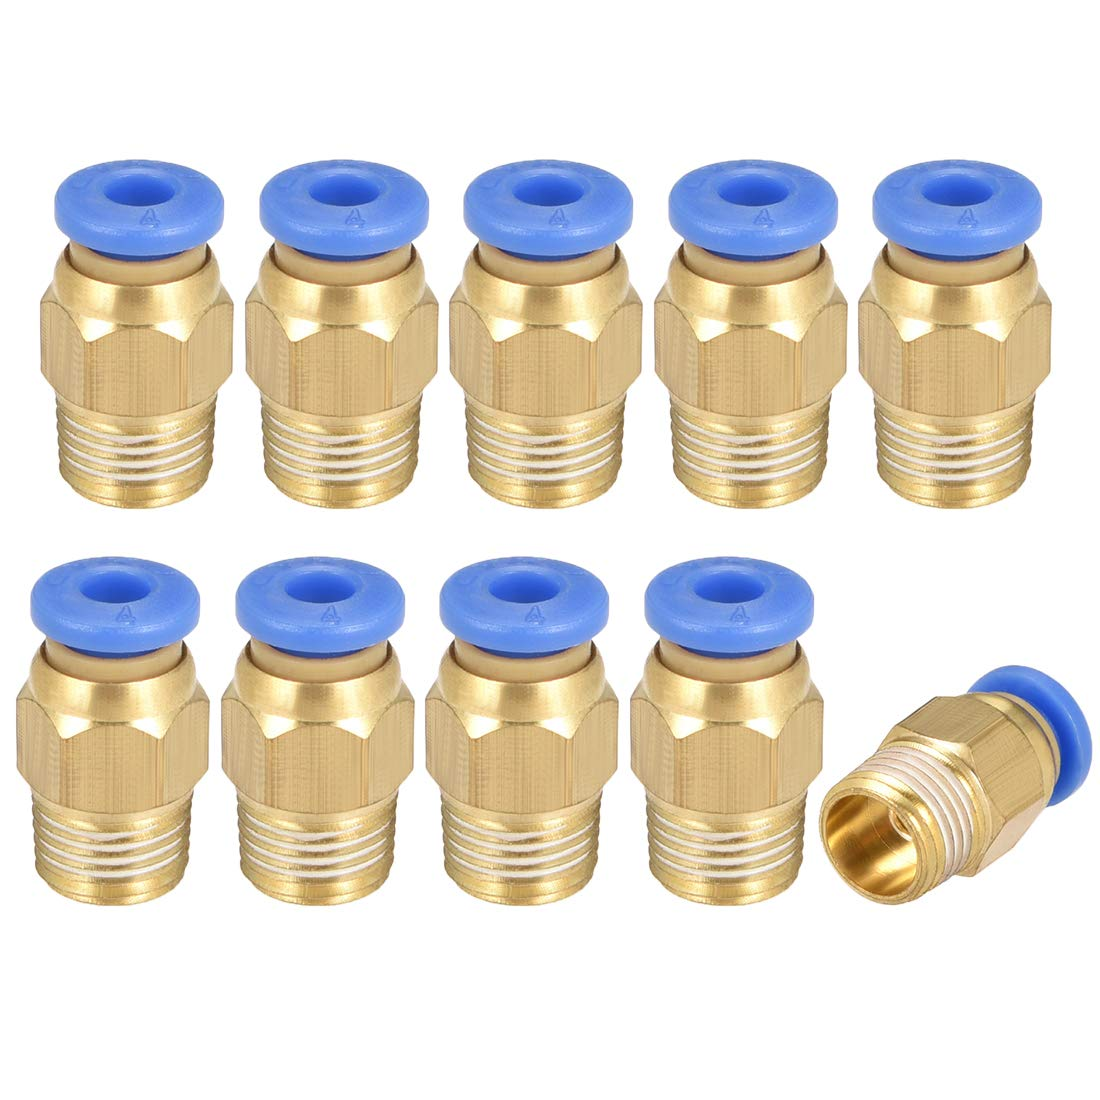 uxcell Straight Pneumatic Push to Quick Connect Fittings 1//8 G Male x 10mm Tube OD 10pcs